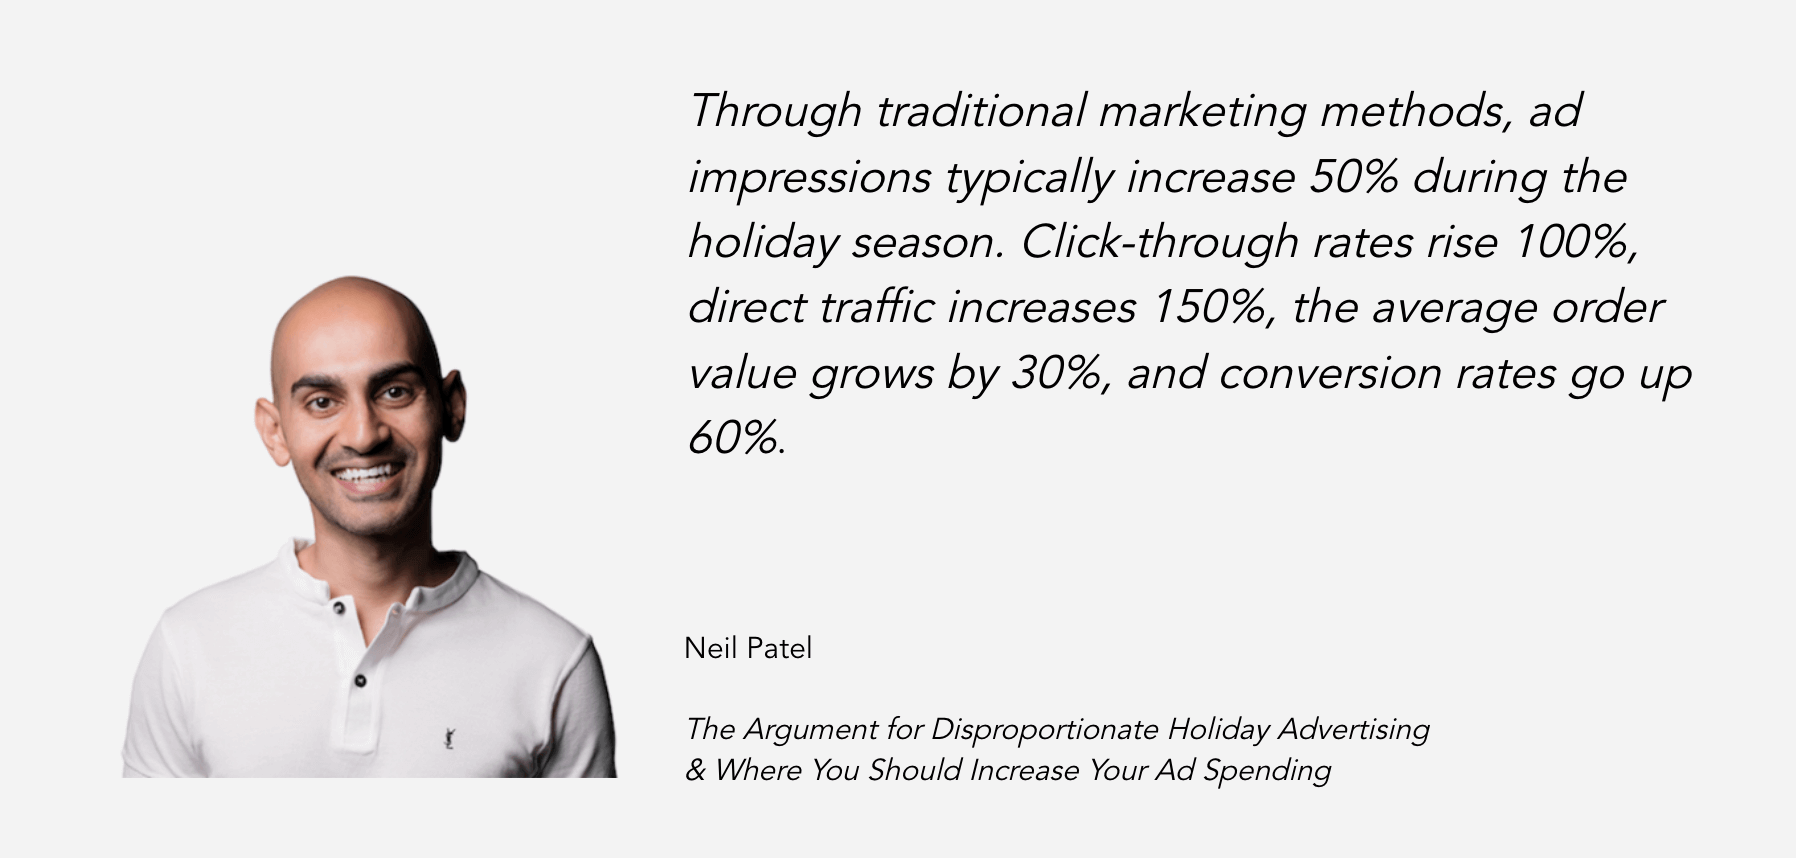 """Ad costs rise, but so does ad performance, during the holiday season. Neil Patel explains more in his post """"The Argument for Disproportionate Holiday Advertising & Where You Should Increase Your Ad Spending"""""""